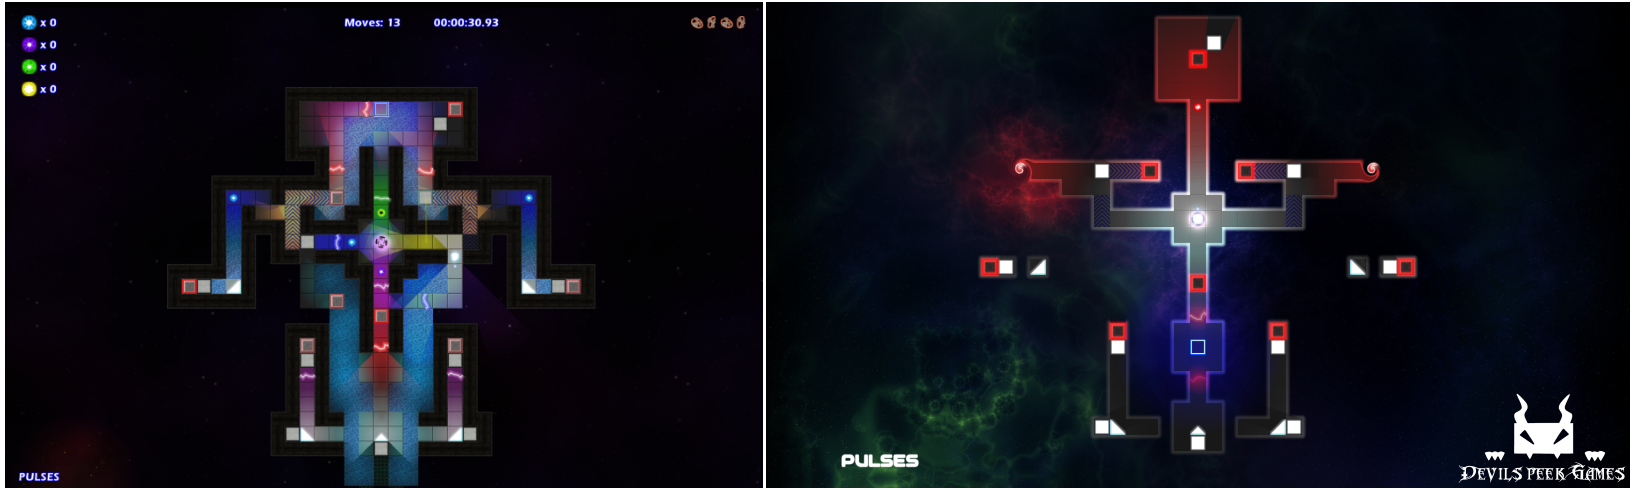 Demo Level - Pulses Before and After